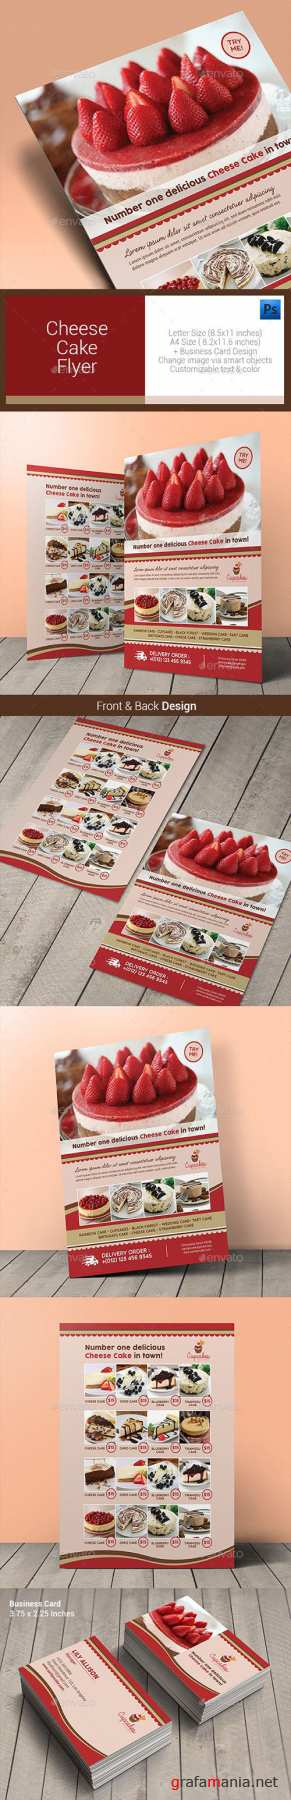 GR - Cheese Cake Menu Flyer 10640856